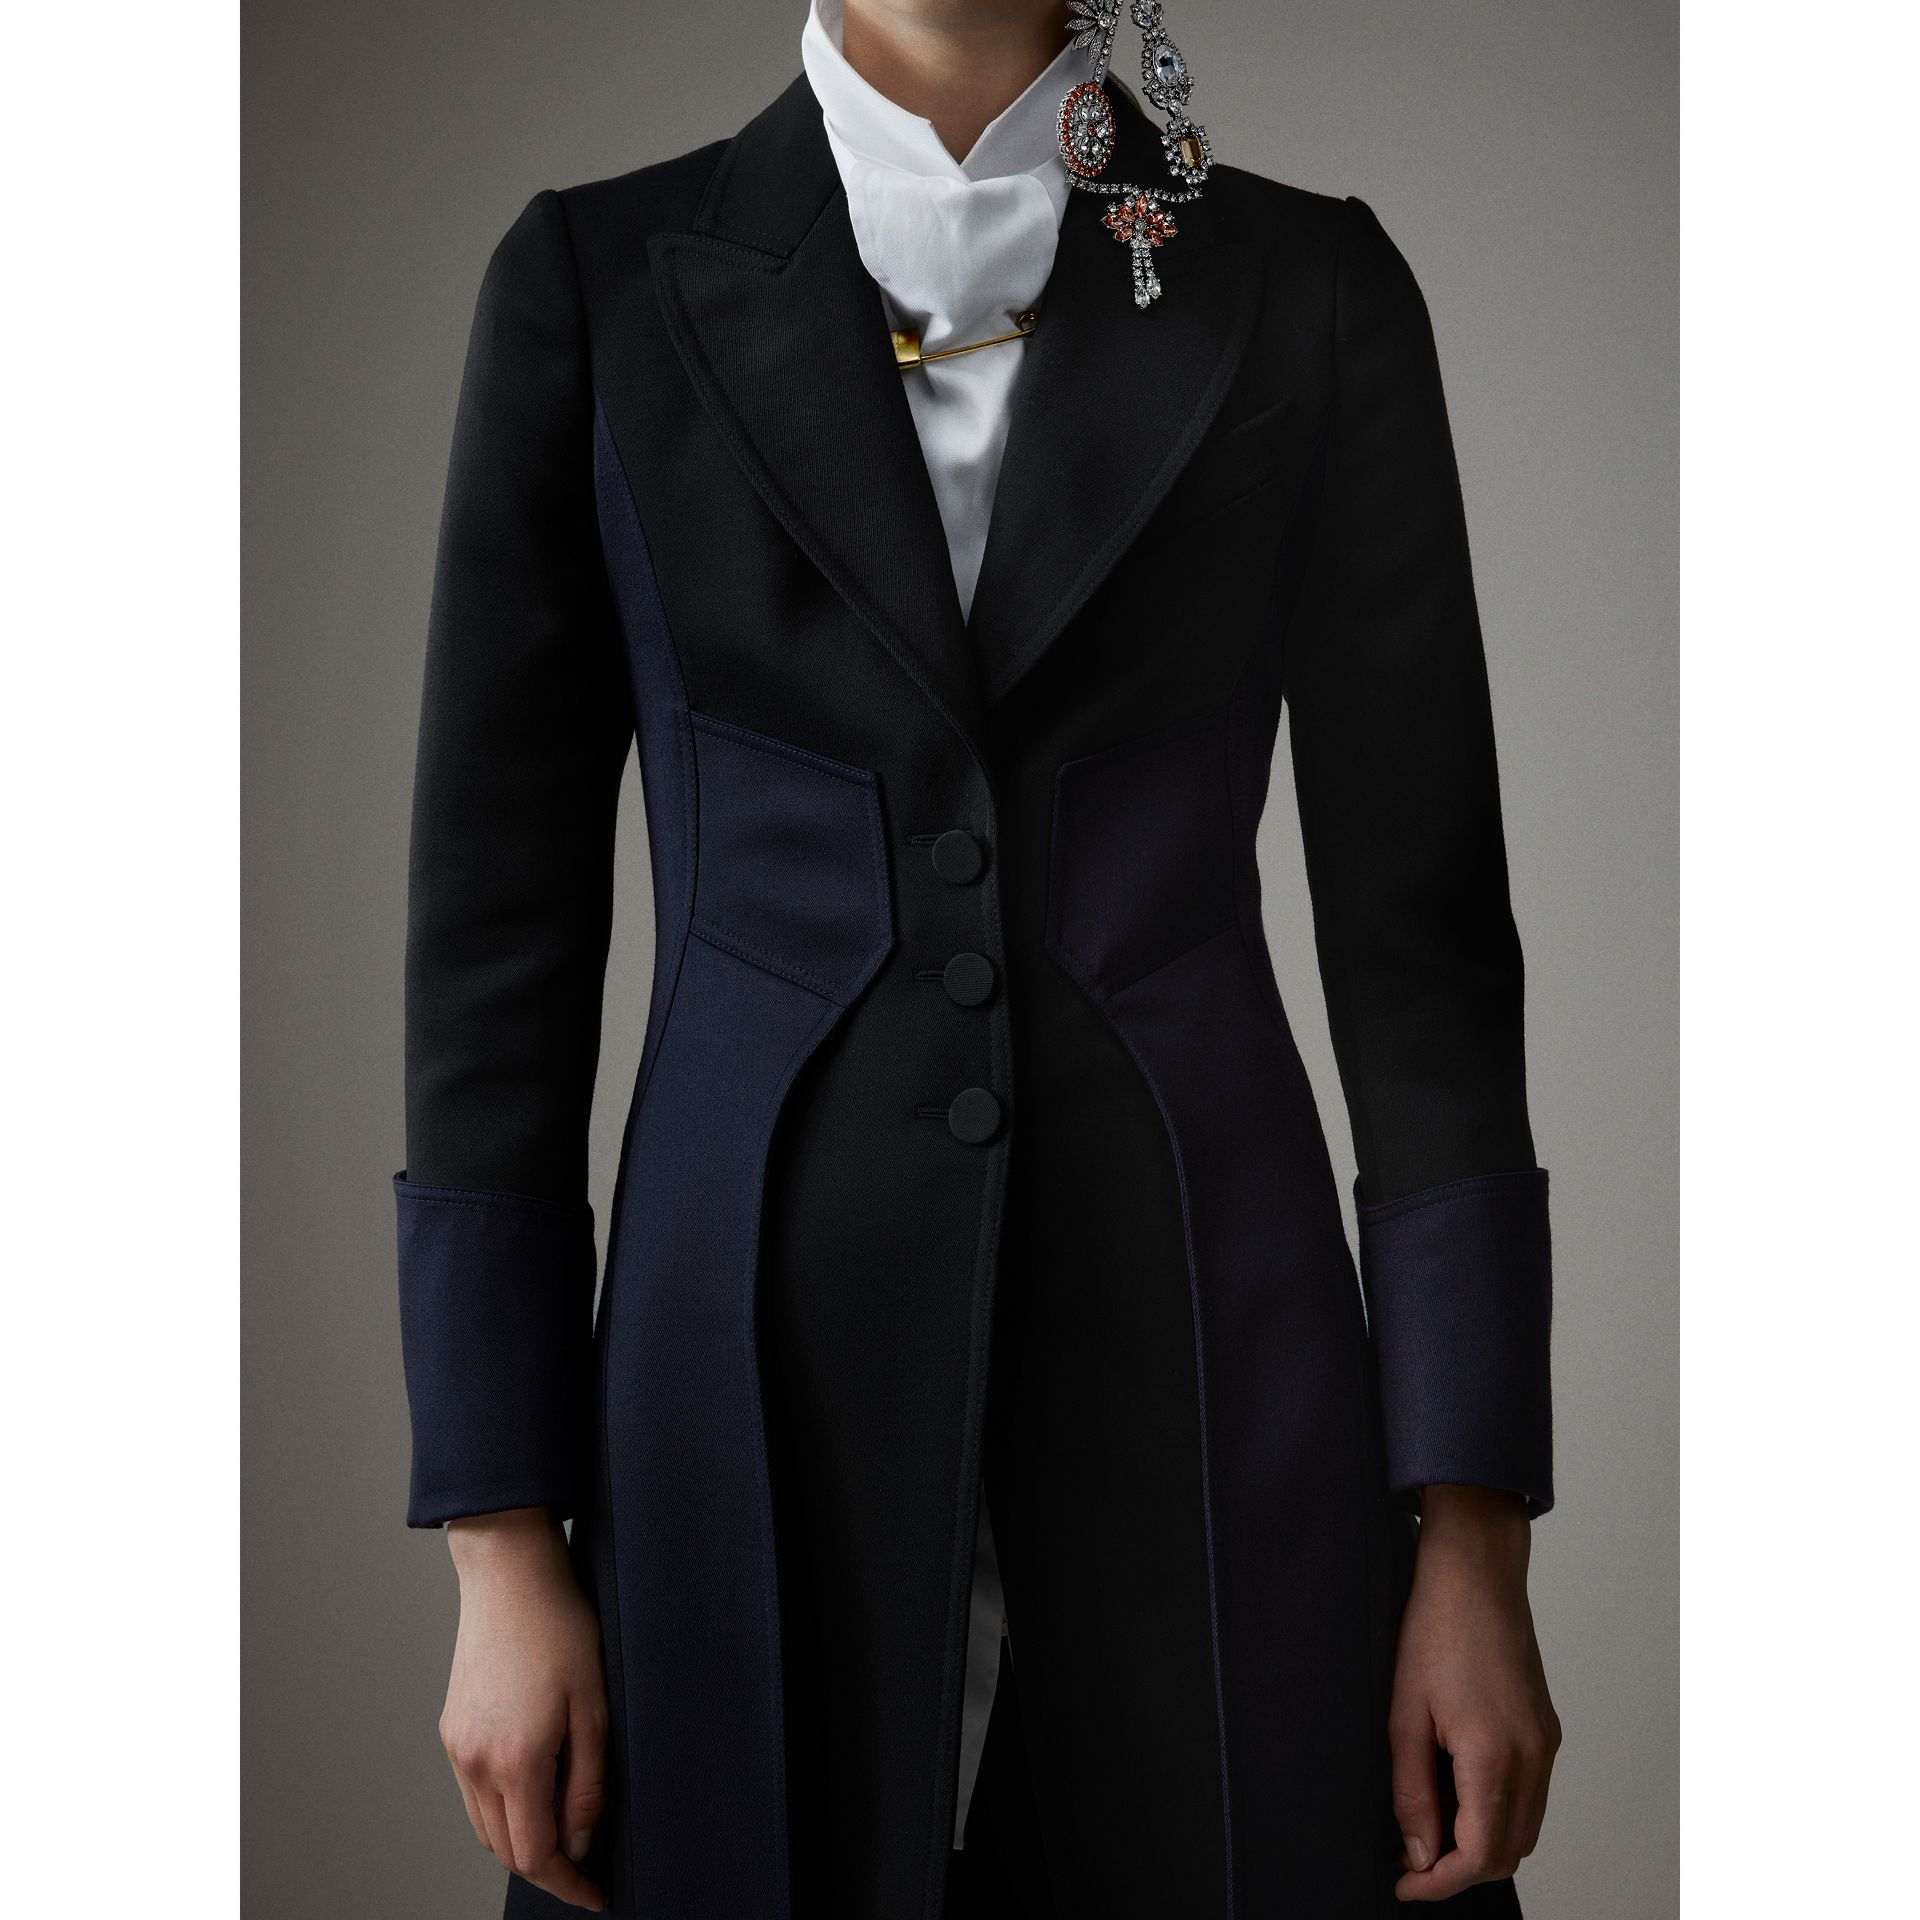 Wool Dressage Coat in Black - Women | Burberry - gallery image 2